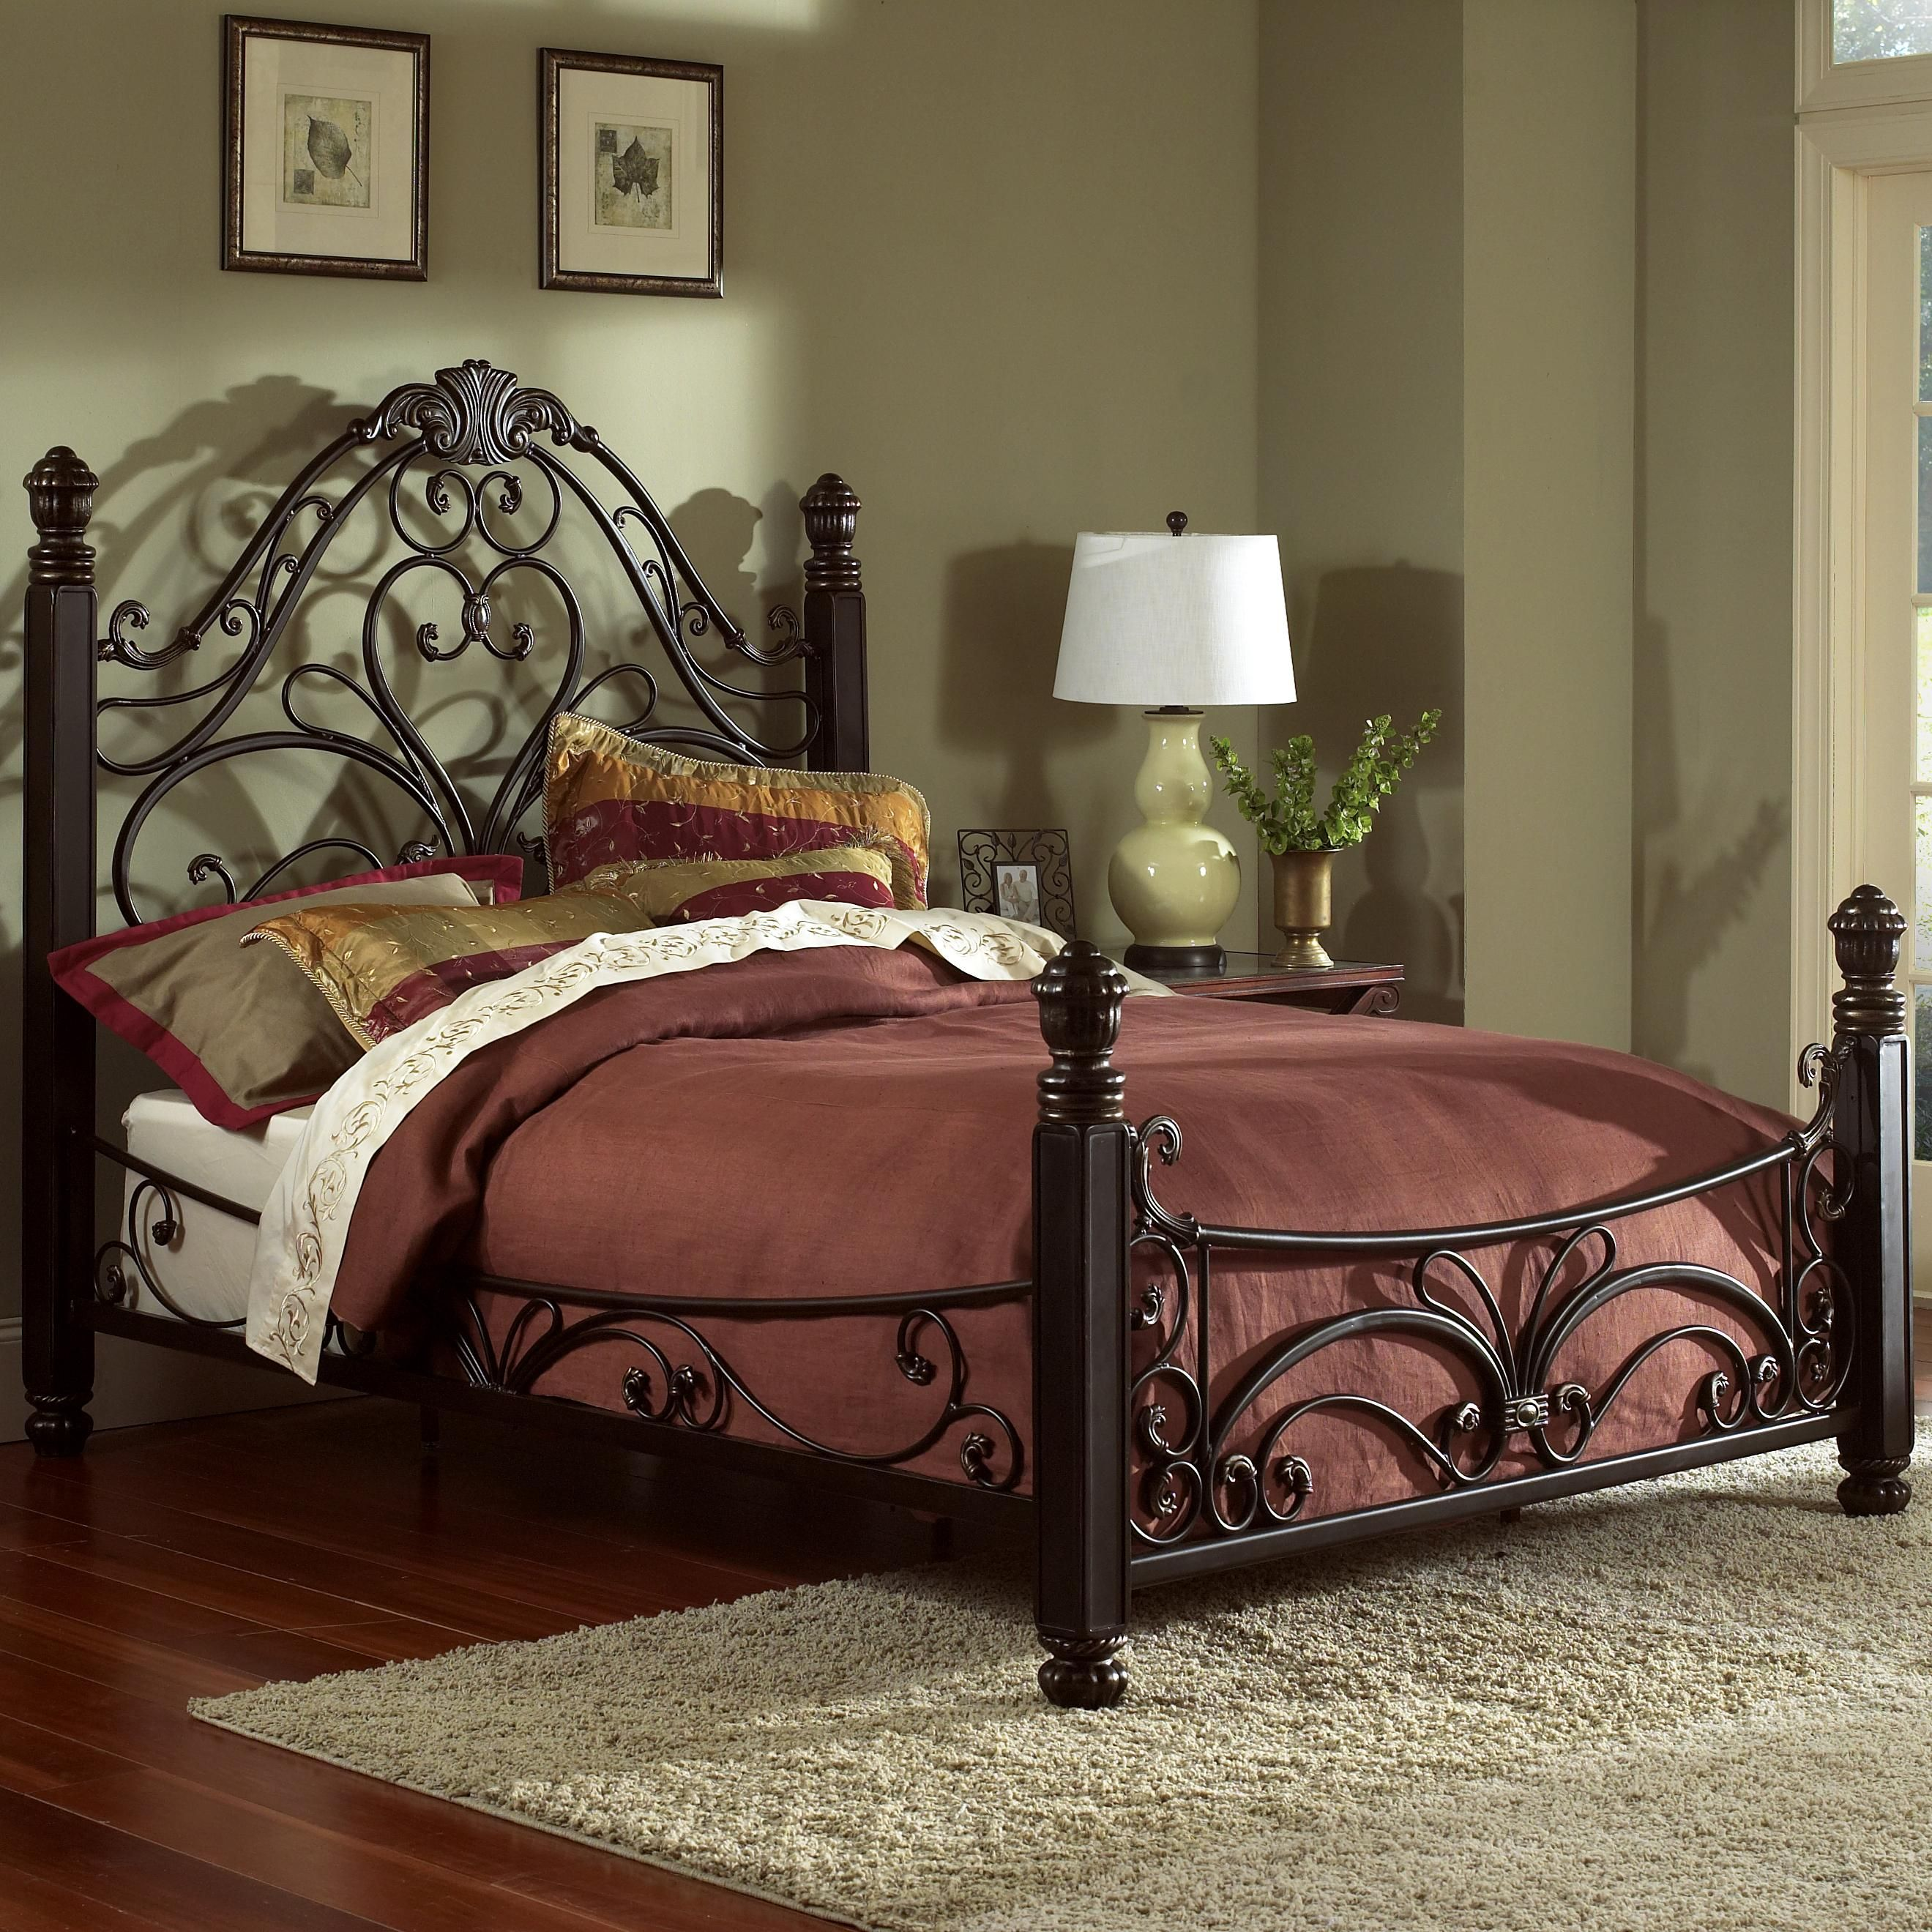 Metal Beds Queen Diana Bed By Largo In 2019 Furniture Bed Metal